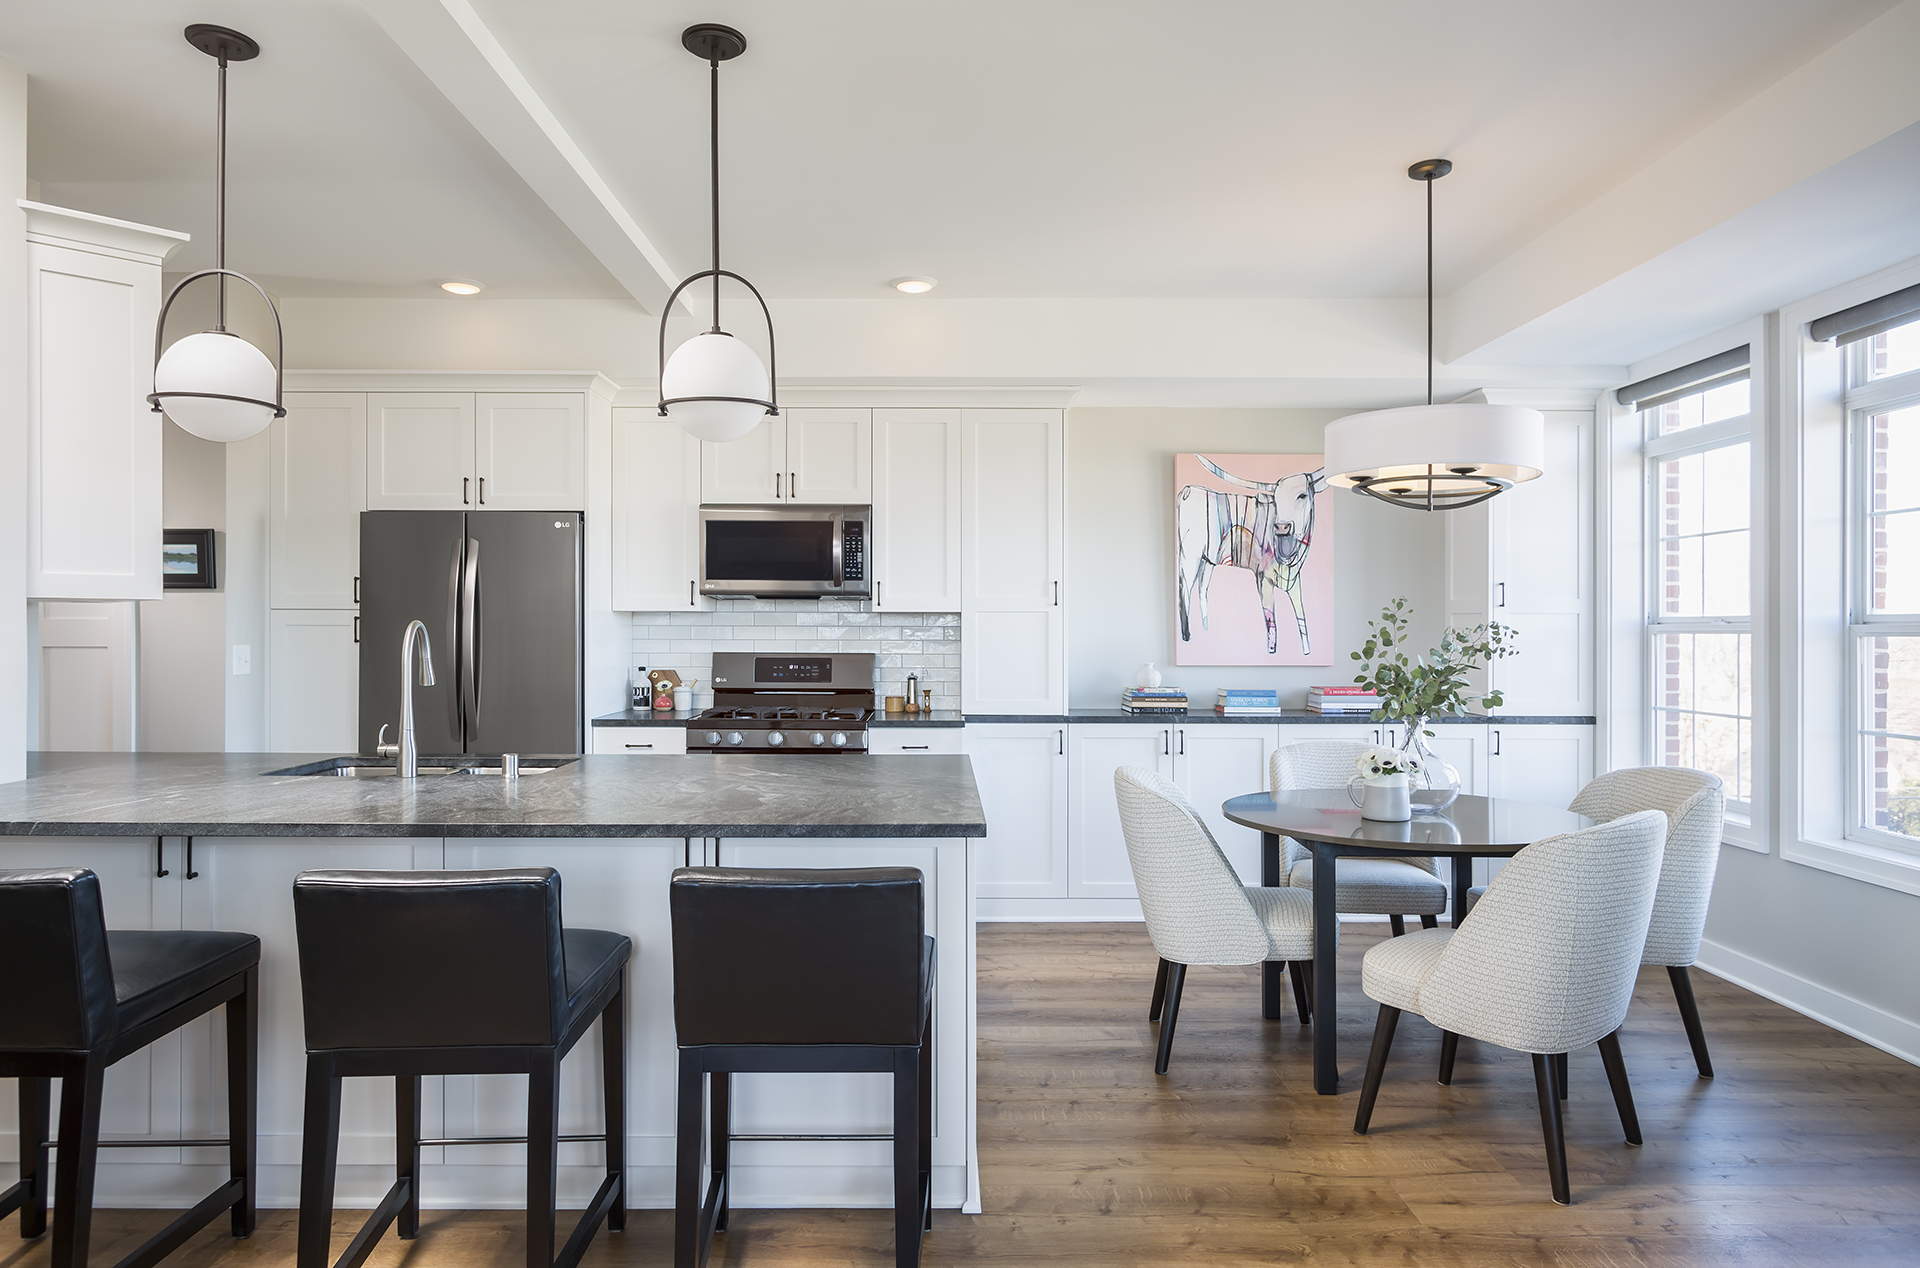 Tons of natural light paired with bright white cabinetry make this smaller kitchen feel airy and spacious.